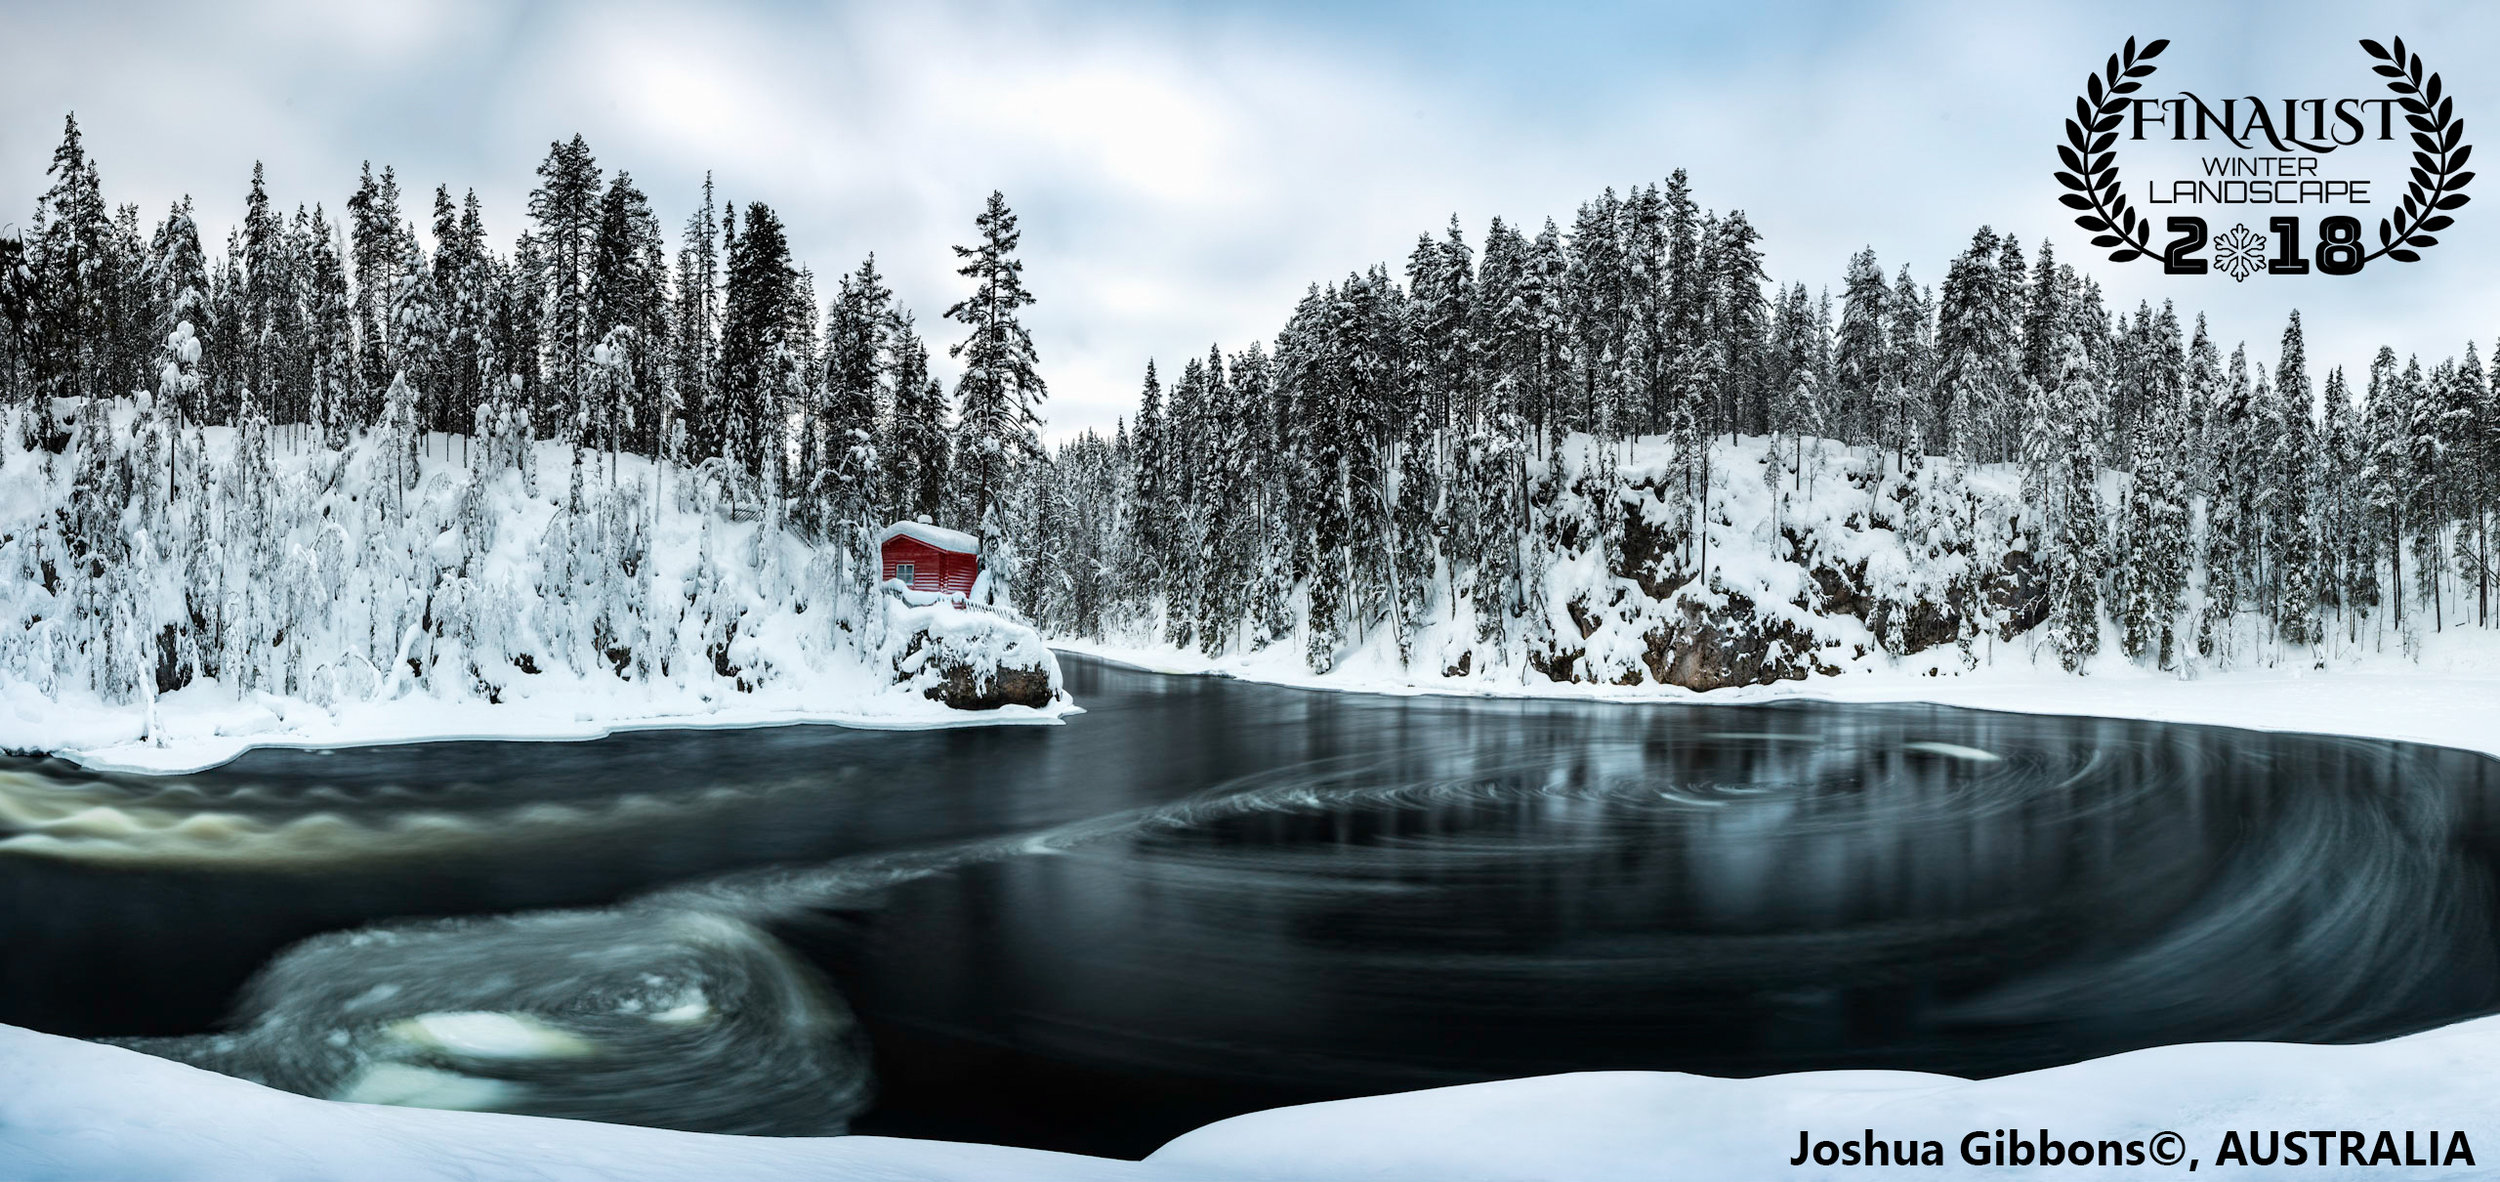 """'Isolation'  """"A traditional log cabin sits in solitude on the Kitkajoki River, Finland. The unique shape of the riverbend causes ice to swirl and spiral its way through the frozen forest.""""  Photographer: Joshua Gibbons, AUSTRALIA"""